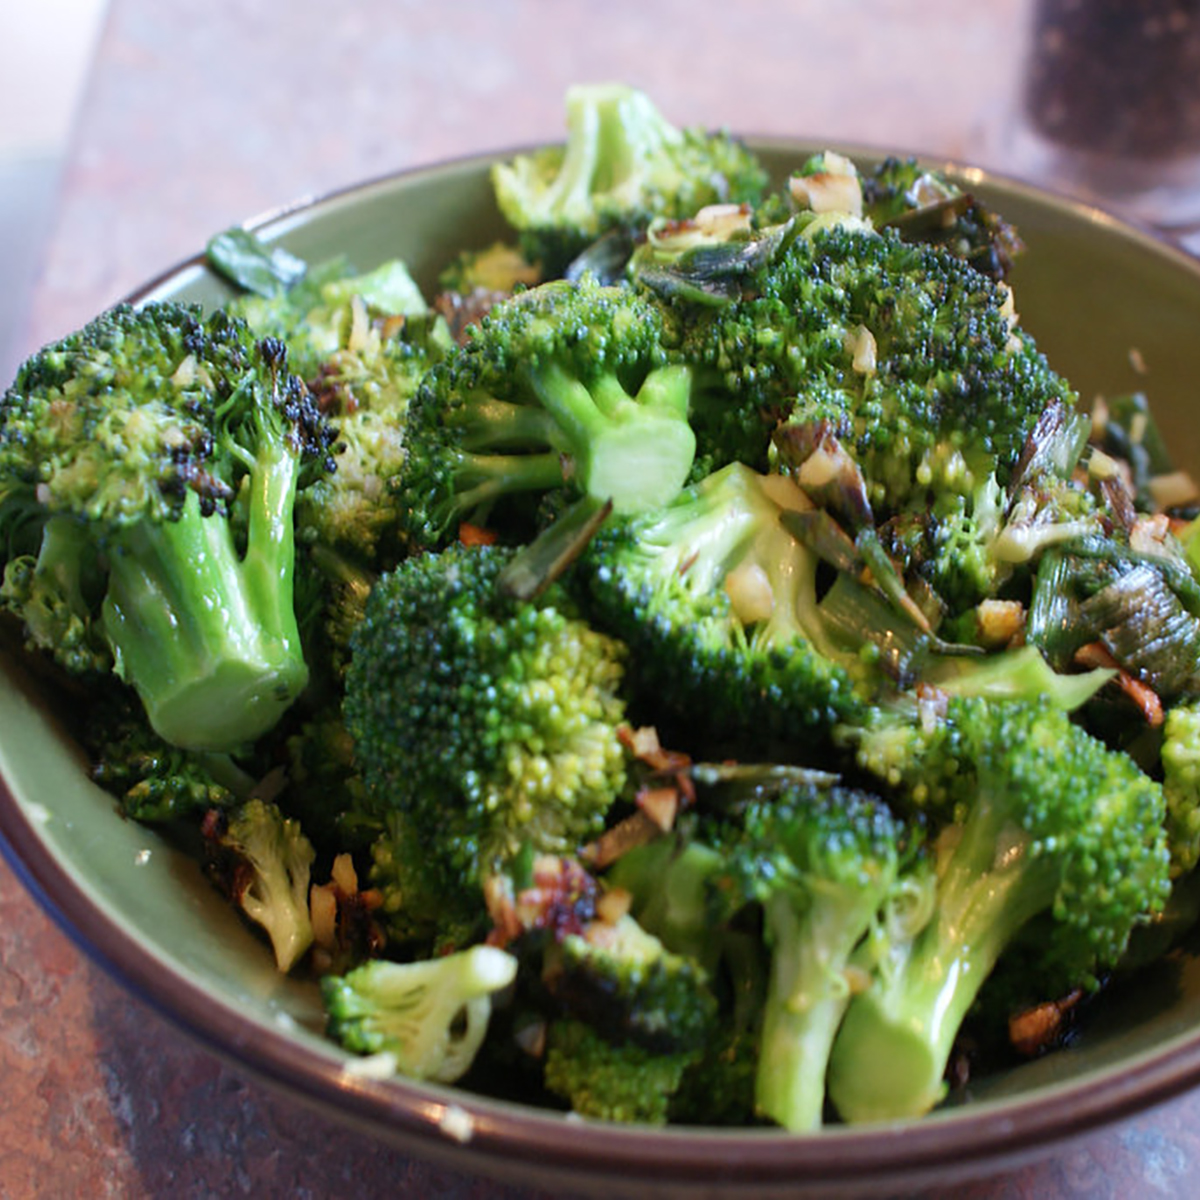 Almond Broccoli Stir Fry